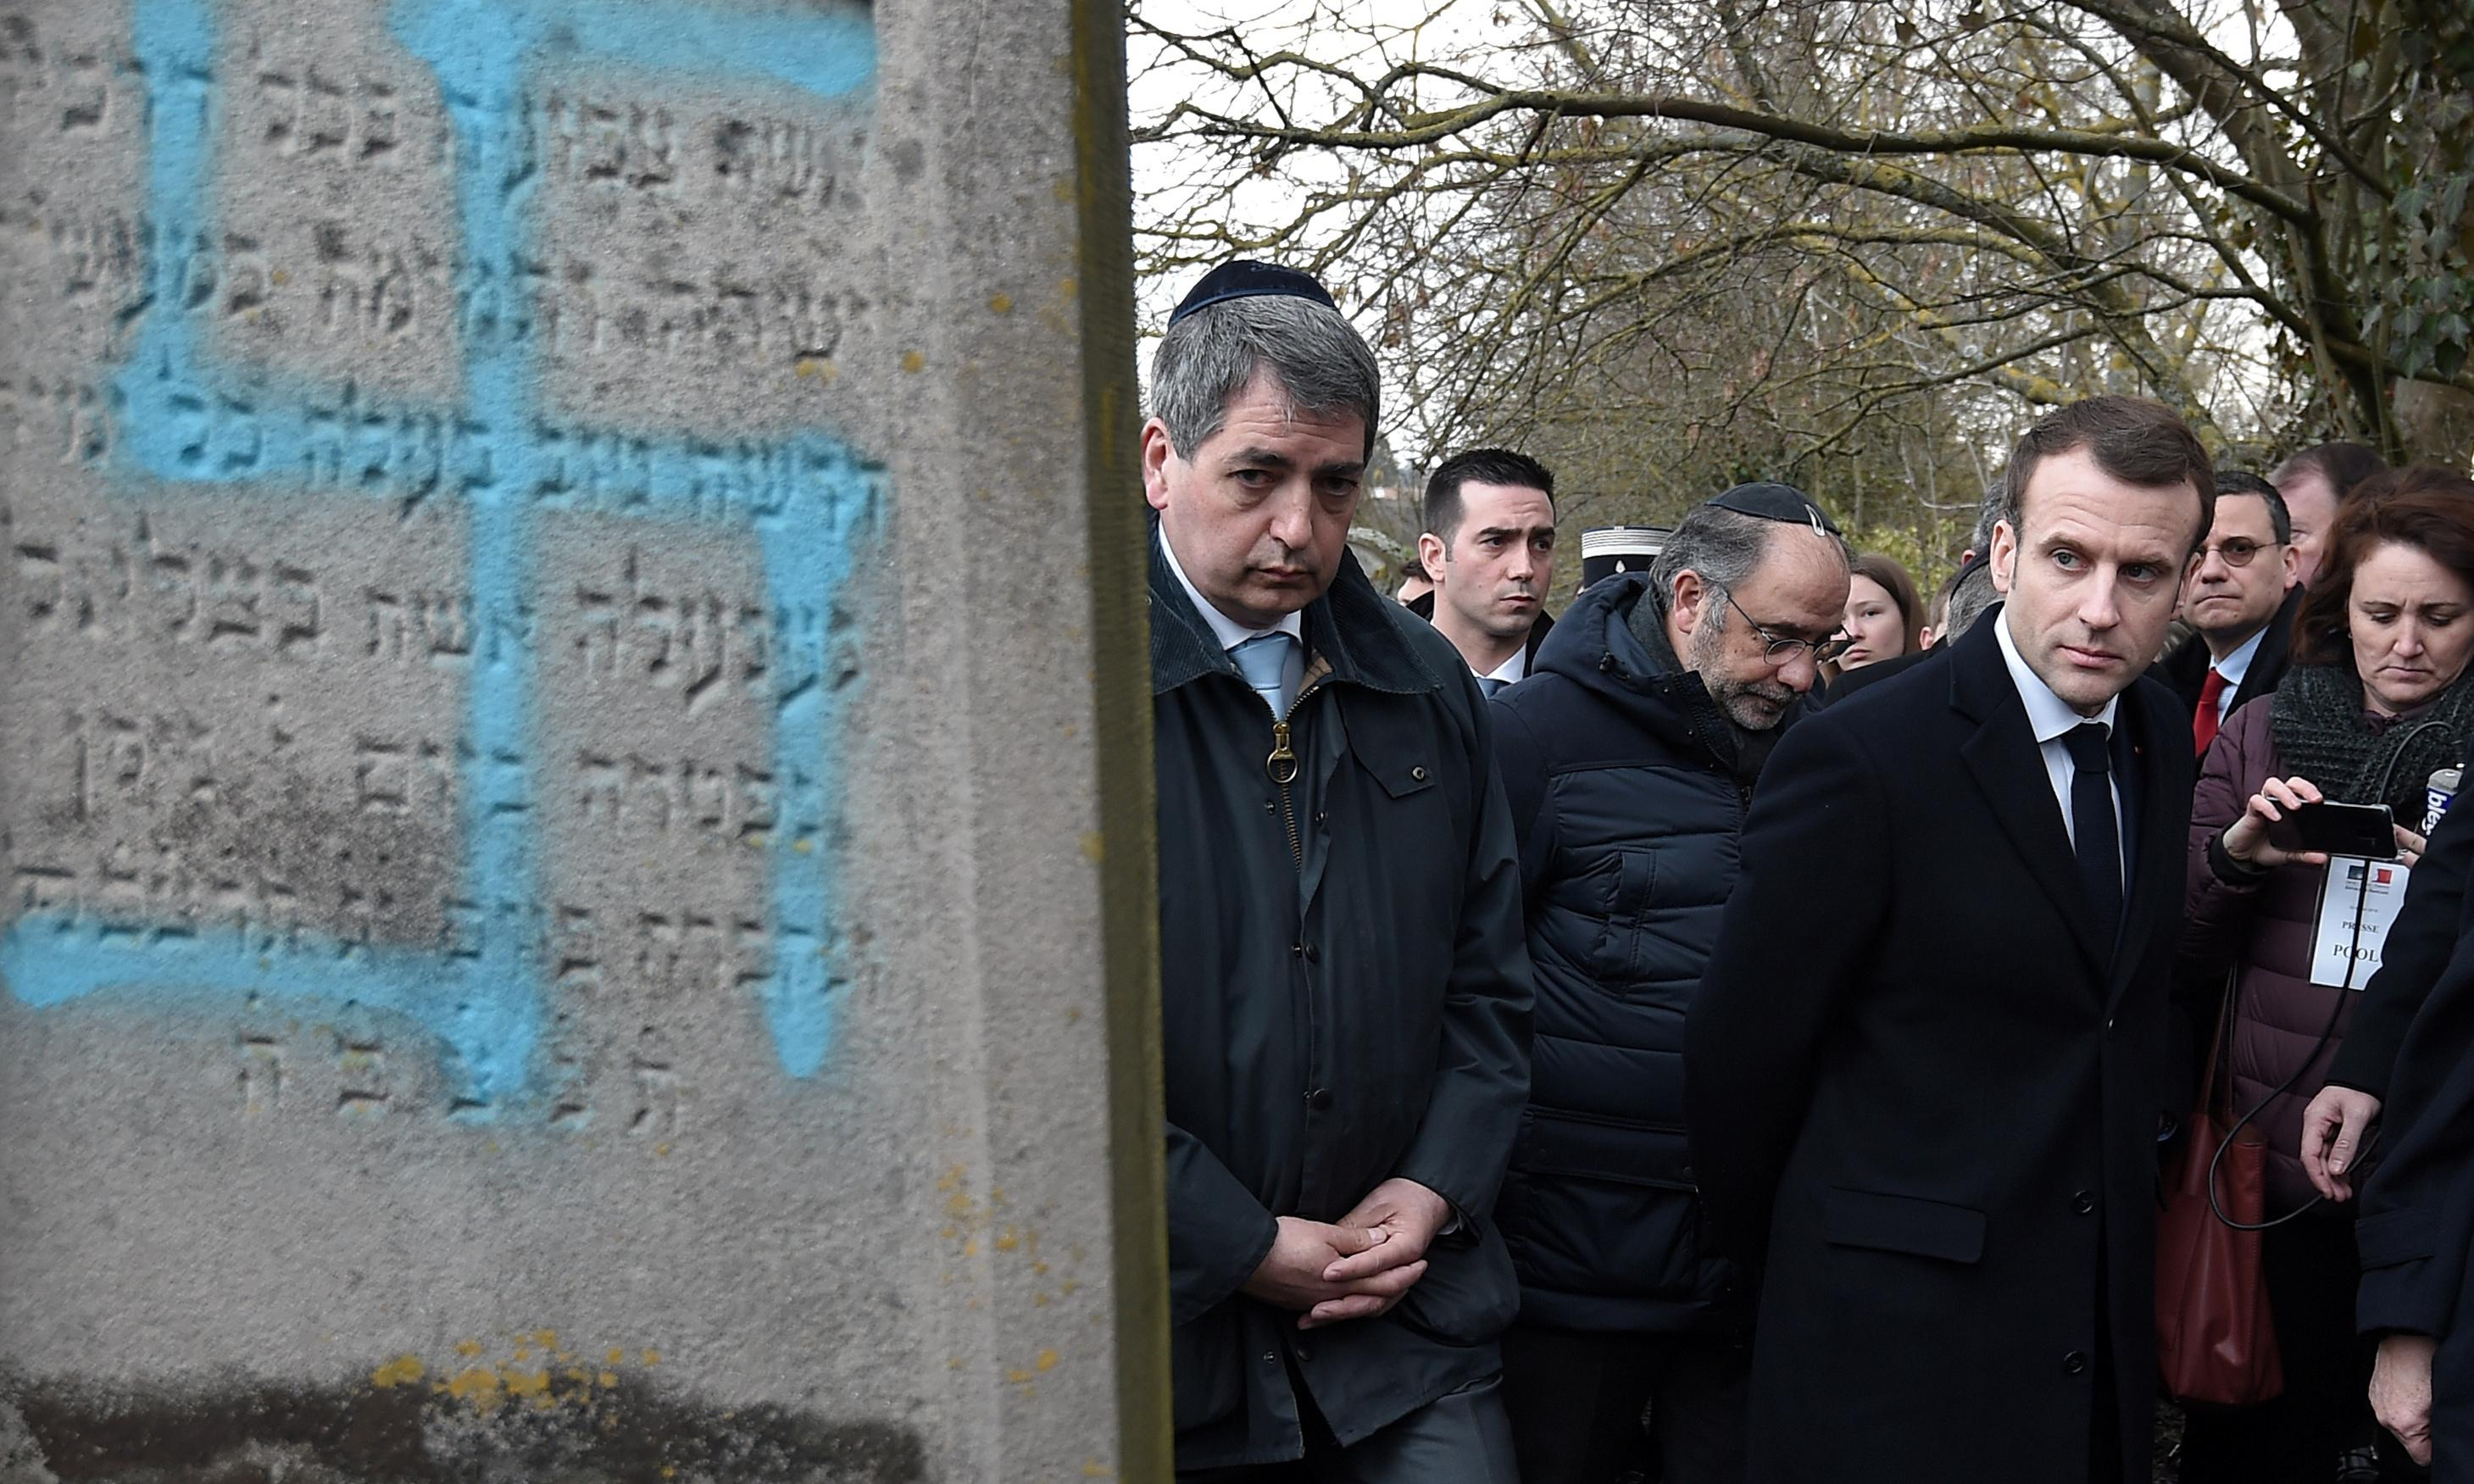 France has an antisemitism problem – and not just from the gilets jaunes